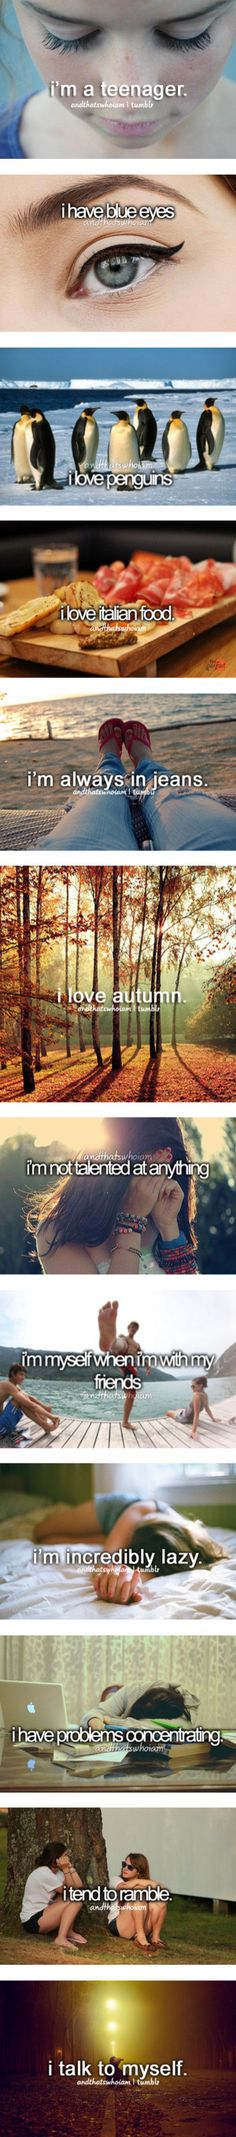 Yes yes yes! But I am talented at some things but not everything !!